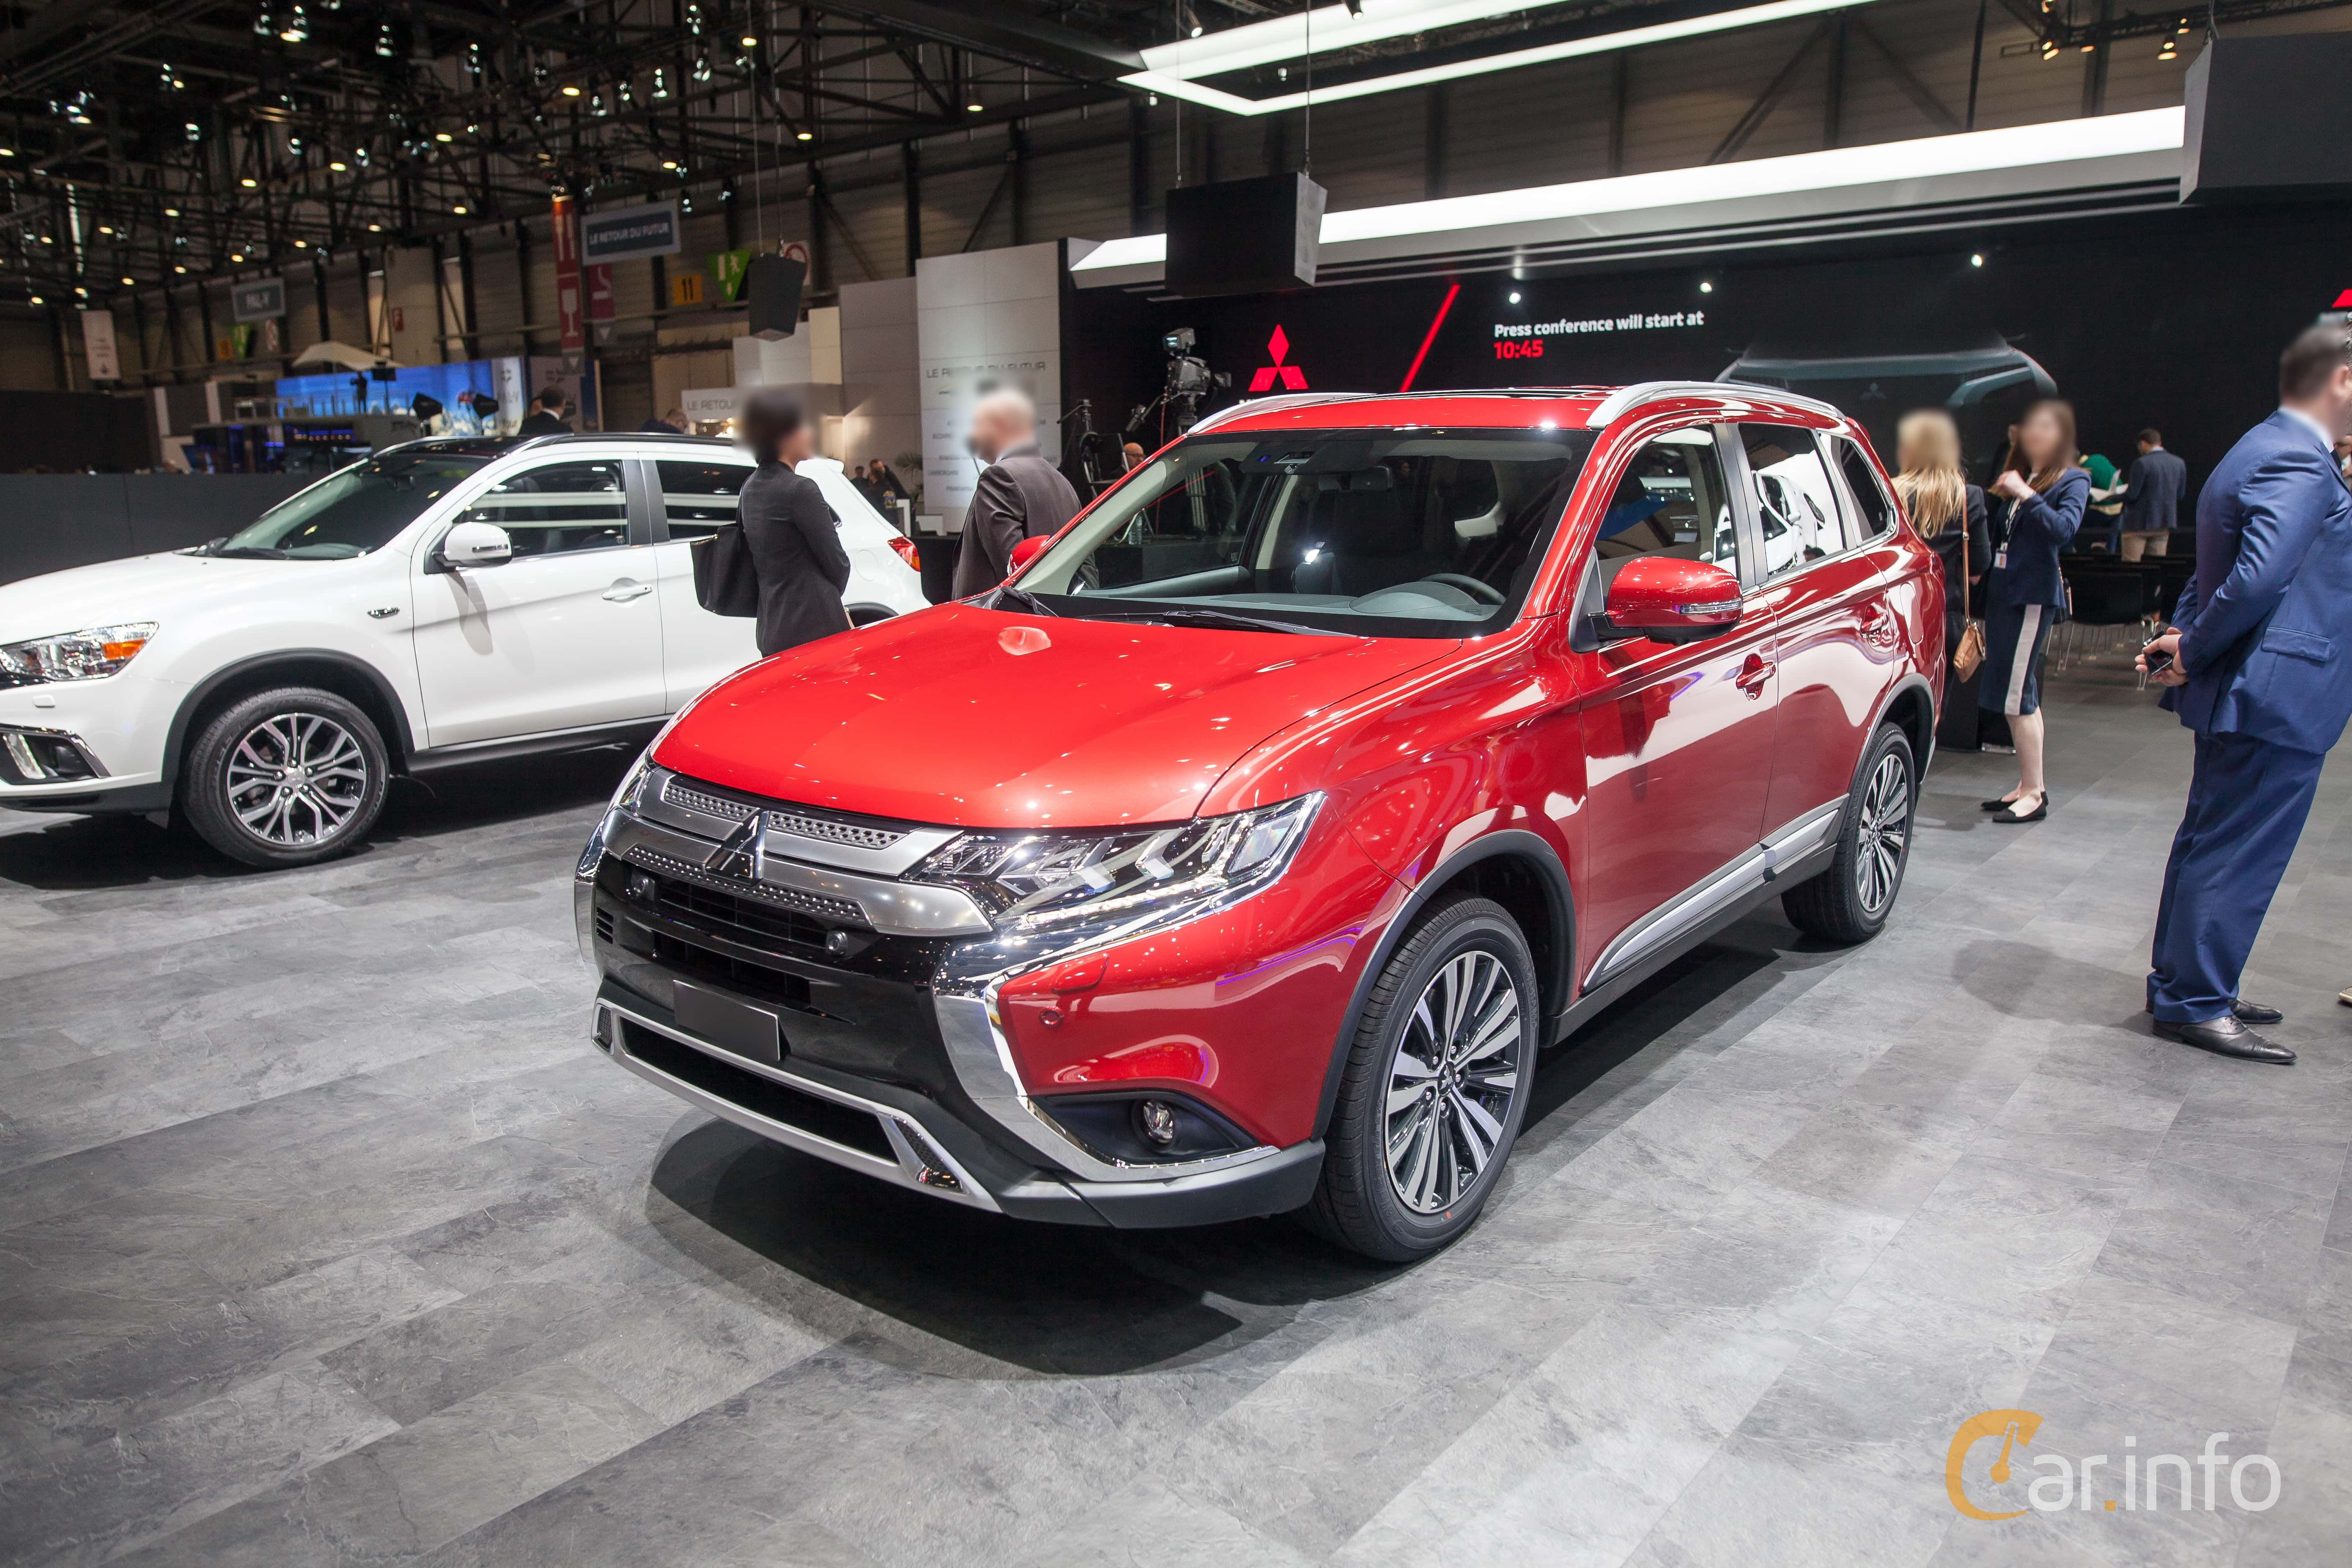 New Mitsubishi Outlander Due In 2021, Could Be Based On ...